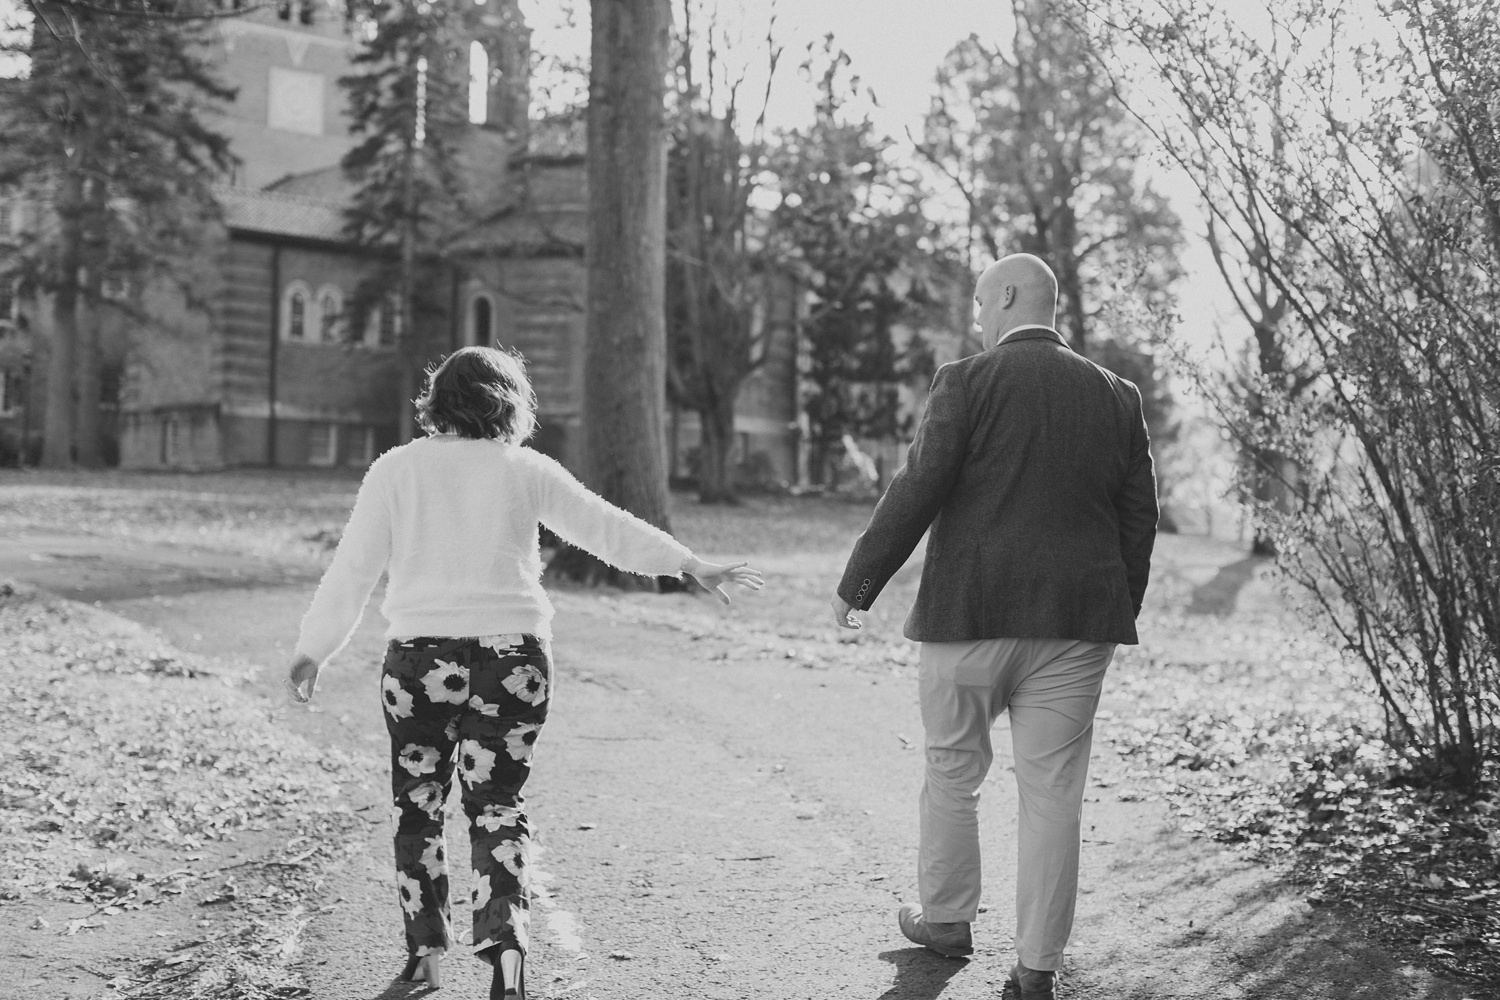 Clarks Summit PA Engagement Session Anniversary Photos_0016.jpg